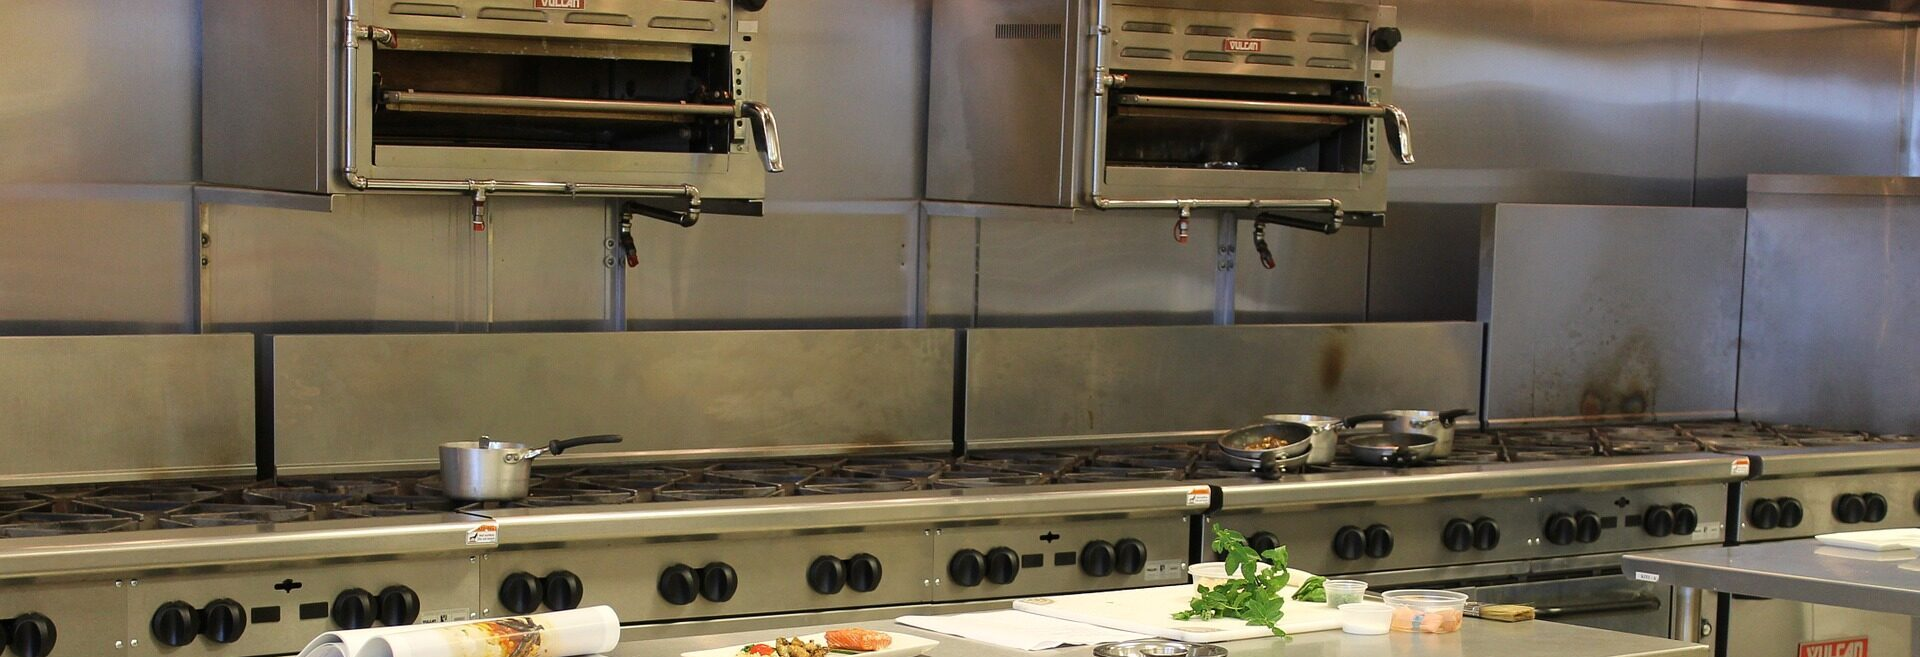 Fire Protection for Restaurants & Commercial Kitchens